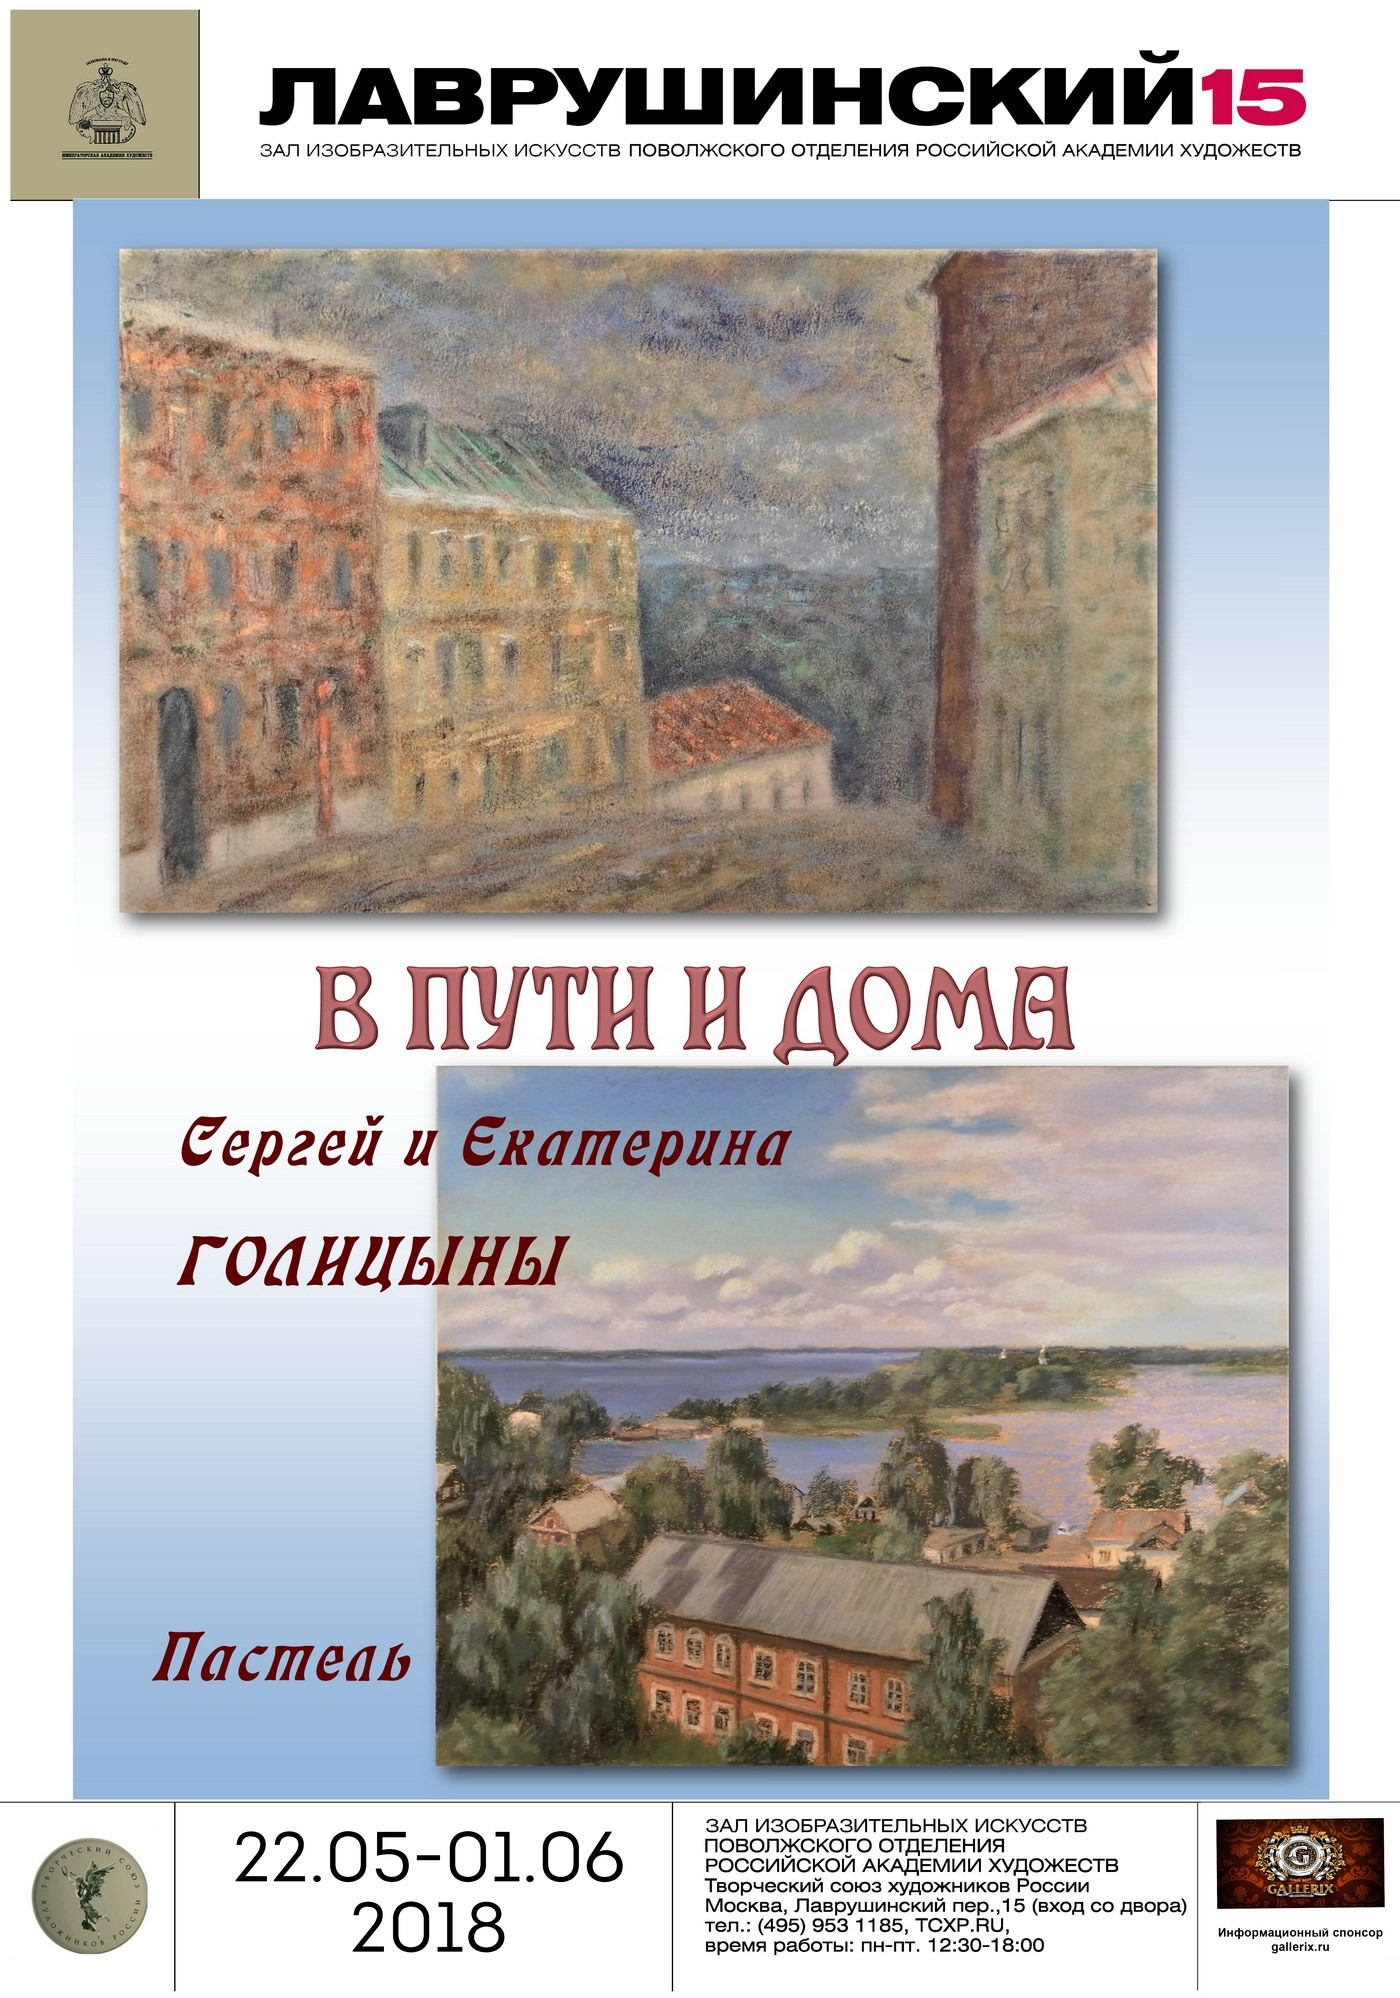 """Exhibition of works by graphic artists Sergey and Ekaterina Golitsyns """"In the way and at home"""""""